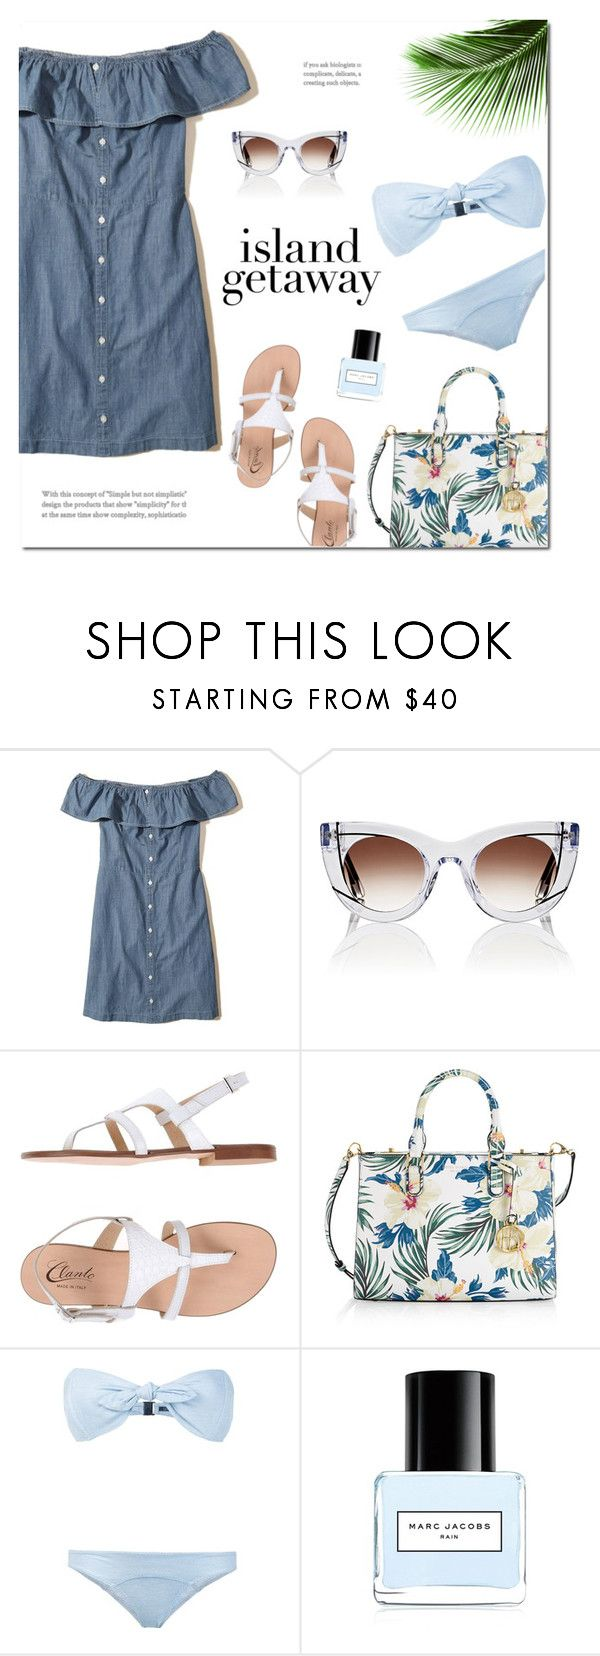 """""""Chic Island Getaway"""" by catchsomeraes ❤ liked on Polyvore featuring Hollister Co., Thierry Lasry, Clanto, Henri Bendel, Lisa Marie Fernandez, Marc Jacobs, tropical, sandals, beach and offshoulderdress"""